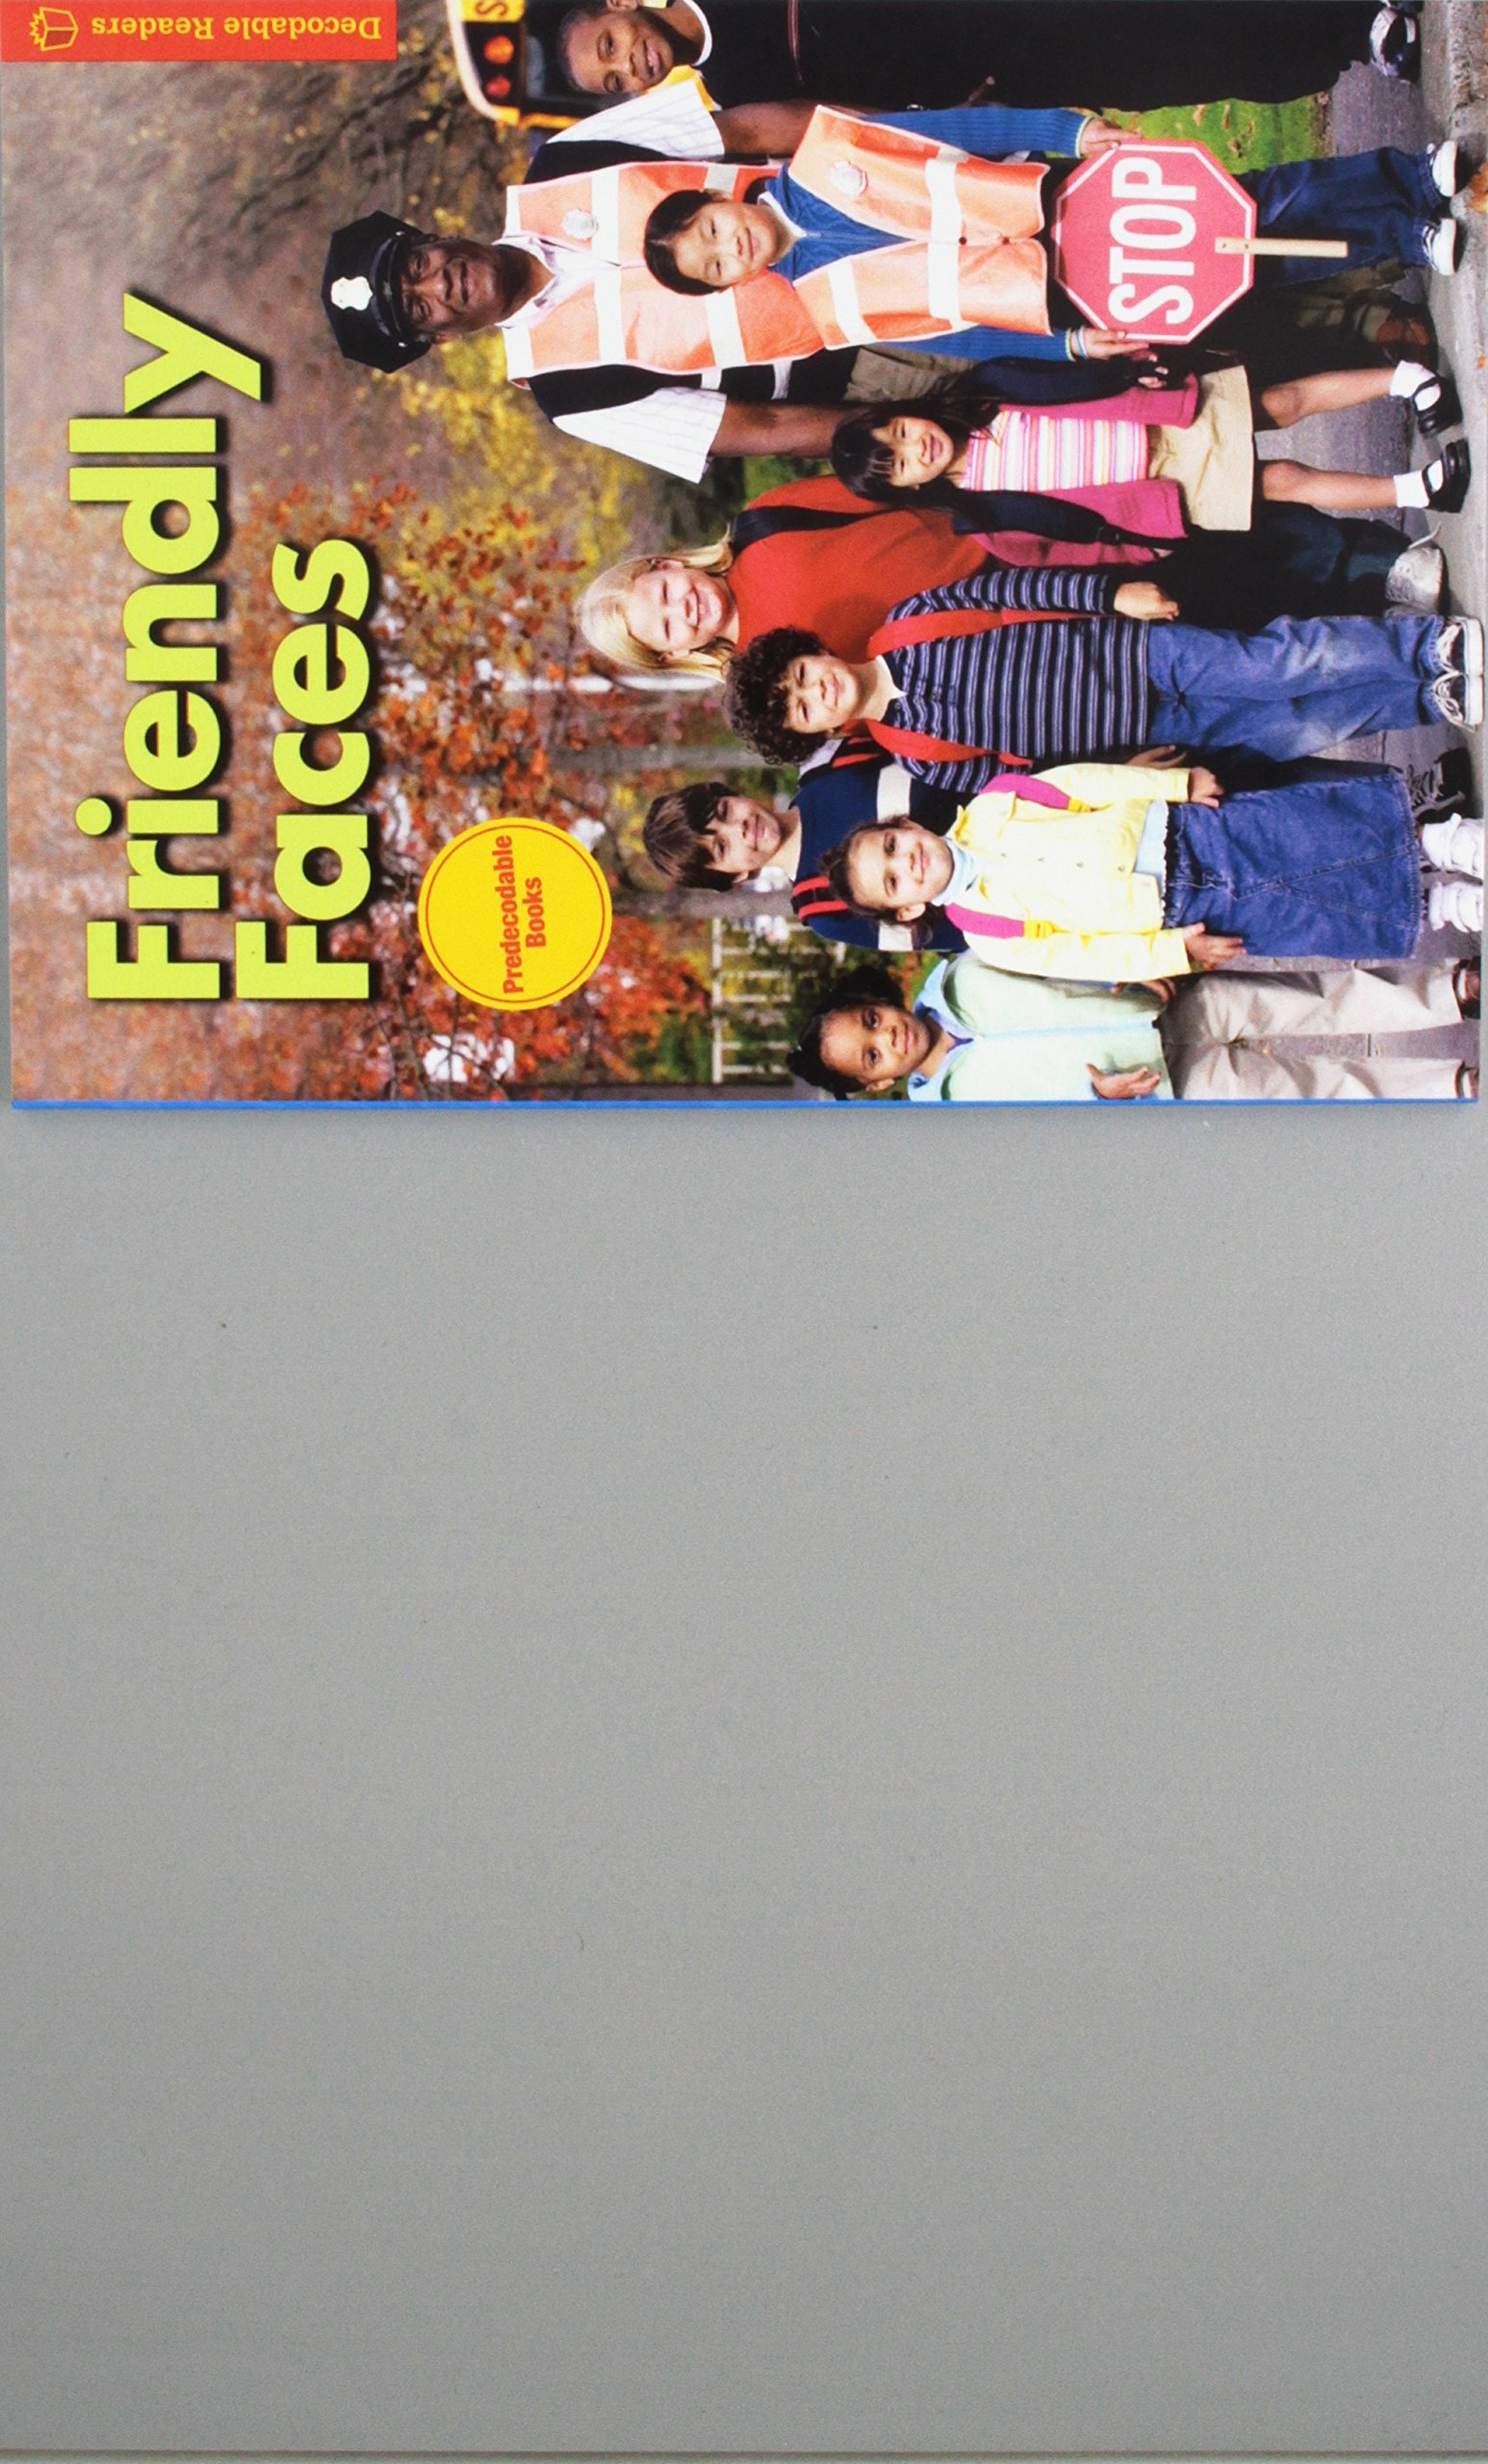 Friendly Faces: Decodable Reader, Level K, Unit 1 (Journeys) ebook